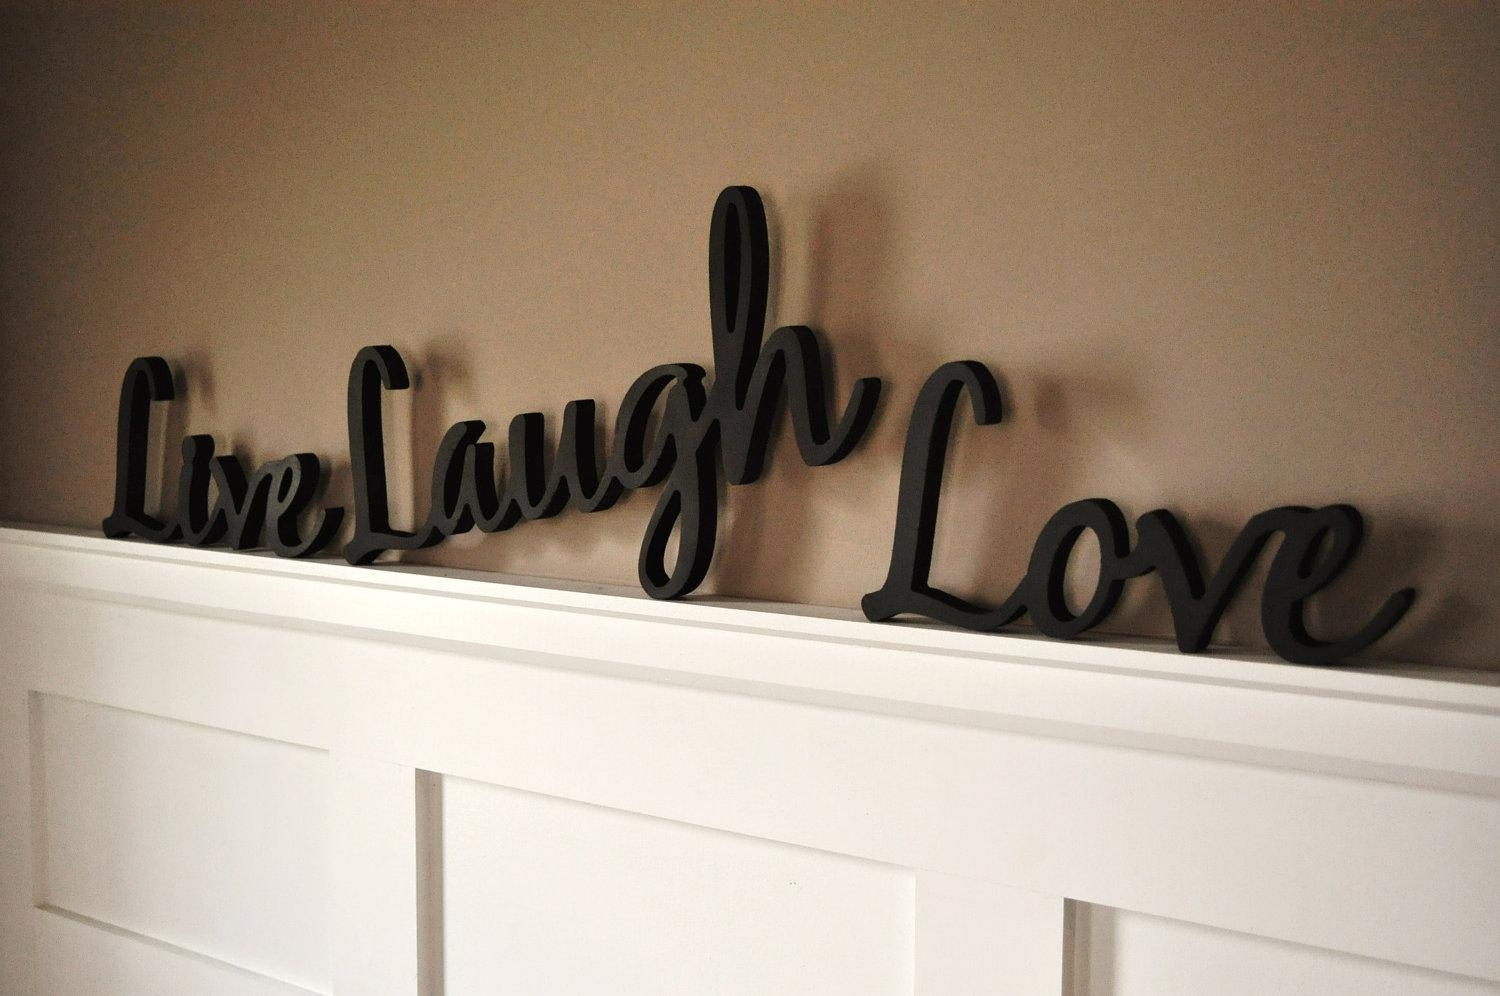 Wall Art Wooden Words | Wallartideas With Regard To Wooden Words Wall Art (View 5 of 20)